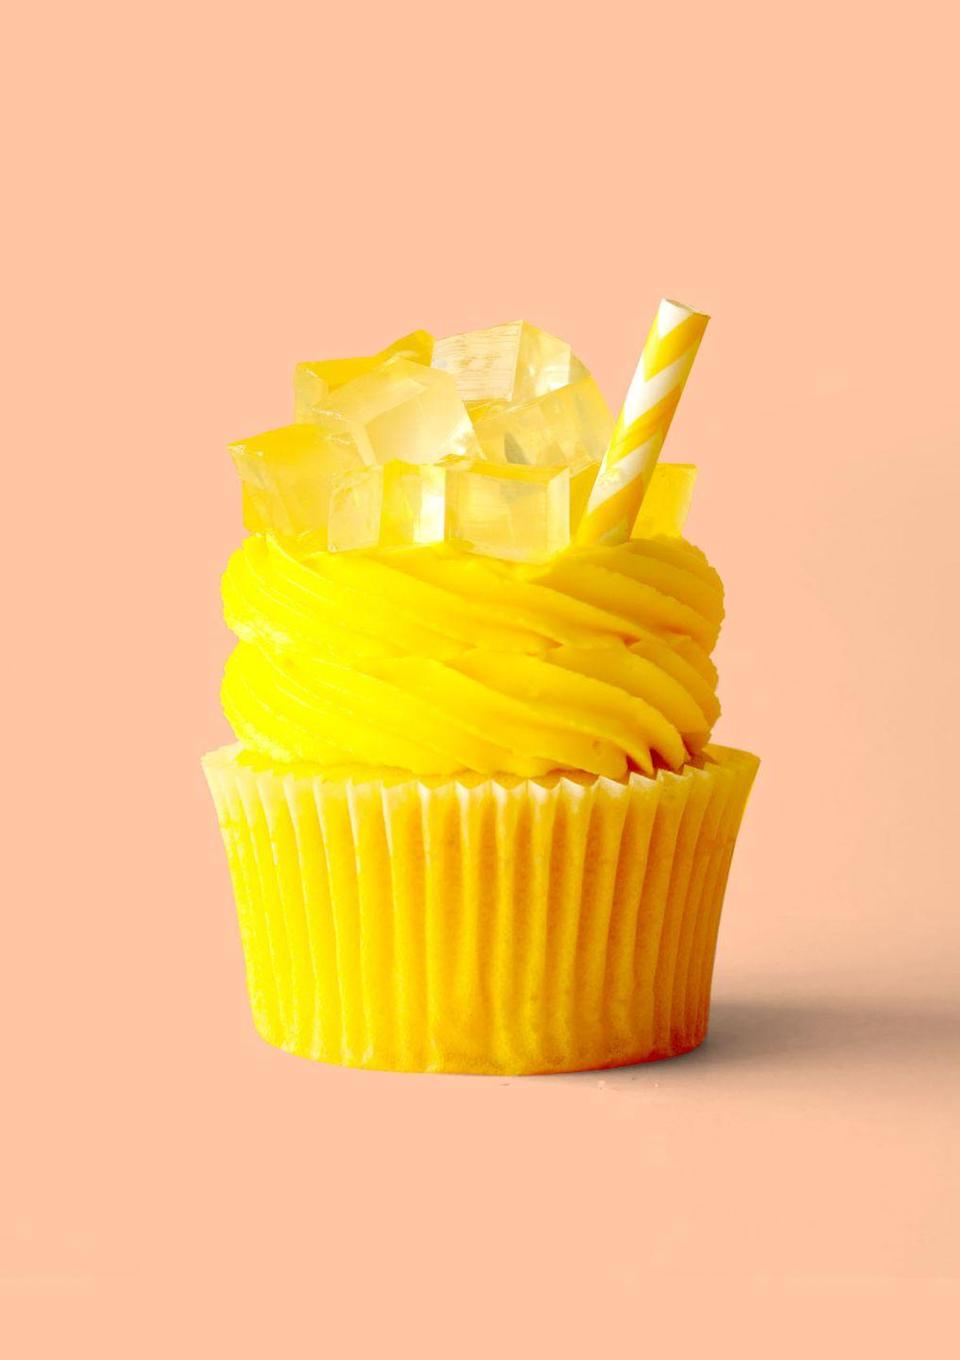 """<p>No need to stop at the lemonade stand this 4th of July: These sweet-tart cupcakes are topped with gelatin """"ice cubes""""!</p><p><strong>Get the recipe at <a href=""""https://thescranline.com/lemonade-cupcakes/"""" rel=""""nofollow noopener"""" target=""""_blank"""" data-ylk=""""slk:The Scran Line"""" class=""""link rapid-noclick-resp"""">The Scran Line</a>.</strong><br><br><a class=""""link rapid-noclick-resp"""" href=""""https://go.redirectingat.com?id=74968X1596630&url=https%3A%2F%2Fwww.walmart.com%2Fsearch%2F%3Fquery%3DPAPER%2BSTRAWS&sref=https%3A%2F%2Fwww.thepioneerwoman.com%2Ffood-cooking%2Frecipes%2Fg36343624%2F4th-of-july-cupcakes%2F"""" rel=""""nofollow noopener"""" target=""""_blank"""" data-ylk=""""slk:SHOP PAPER STRAWS"""">SHOP PAPER STRAWS</a></p>"""